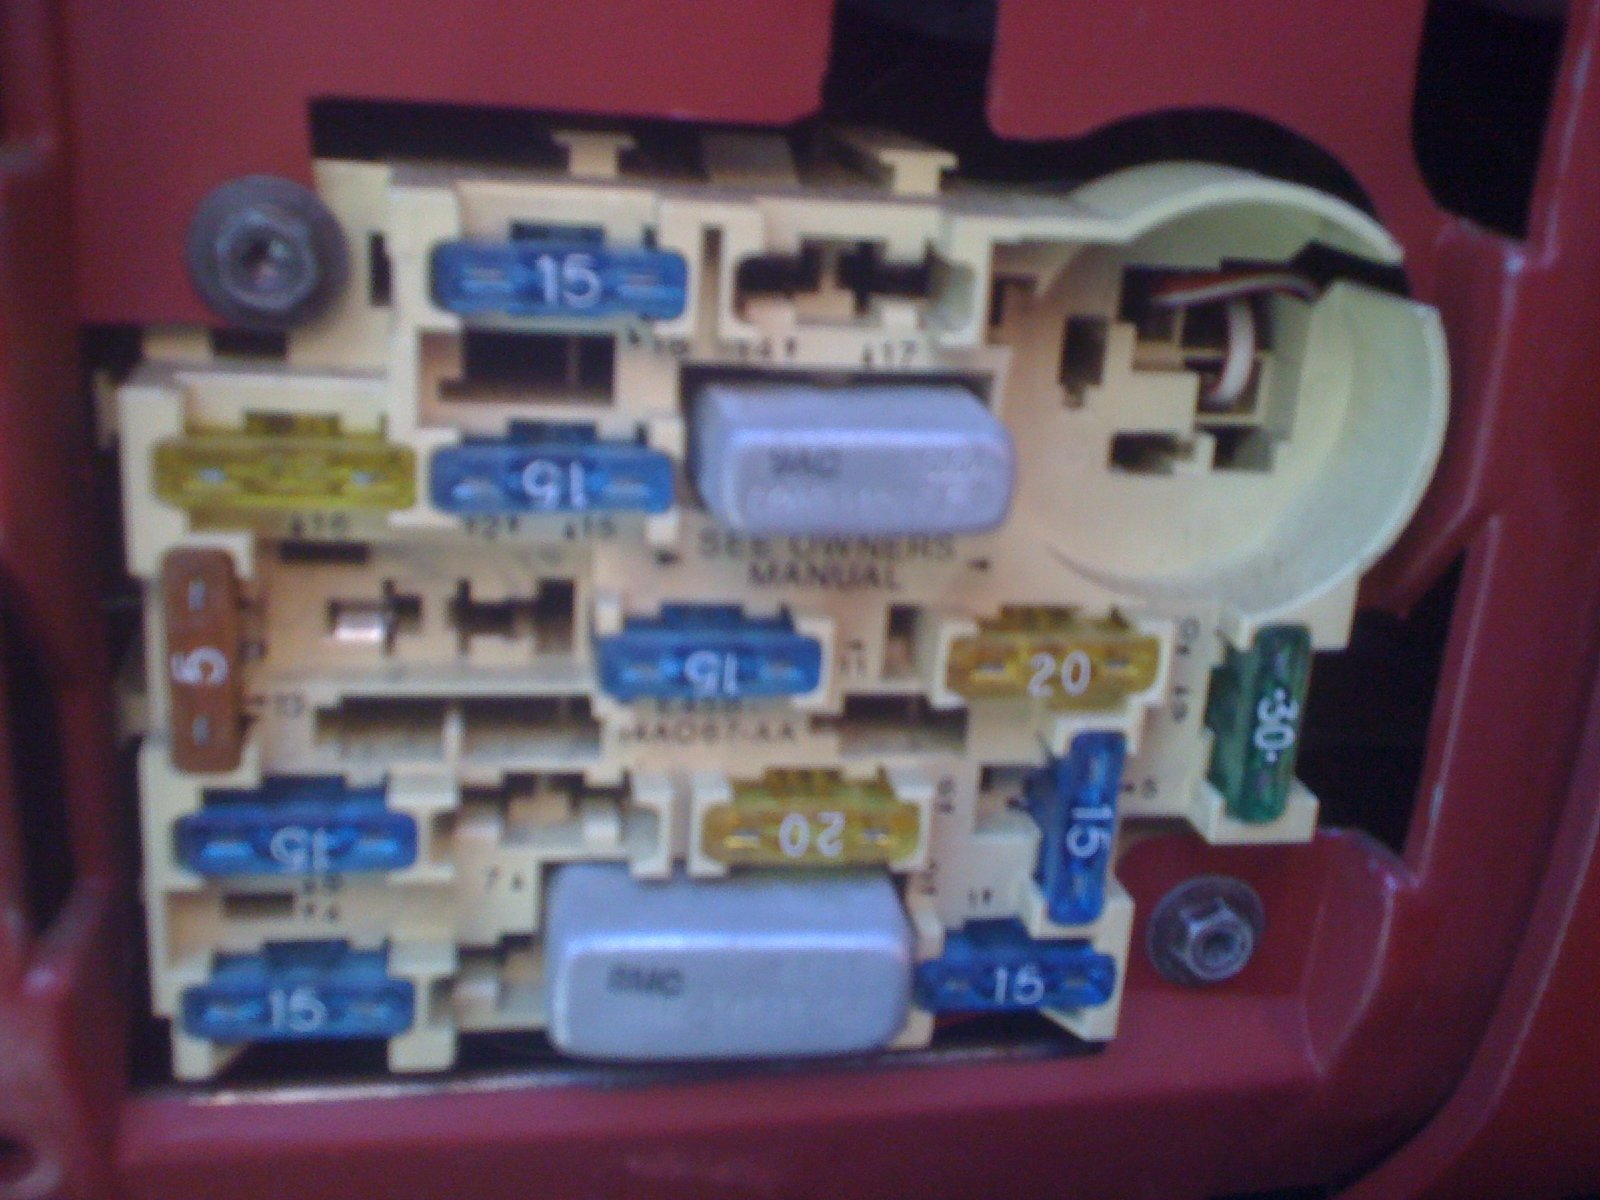 hight resolution of pic needed of 1989 mustang 2 3 fuse box ford mustang forum 2002 mustang fuse box